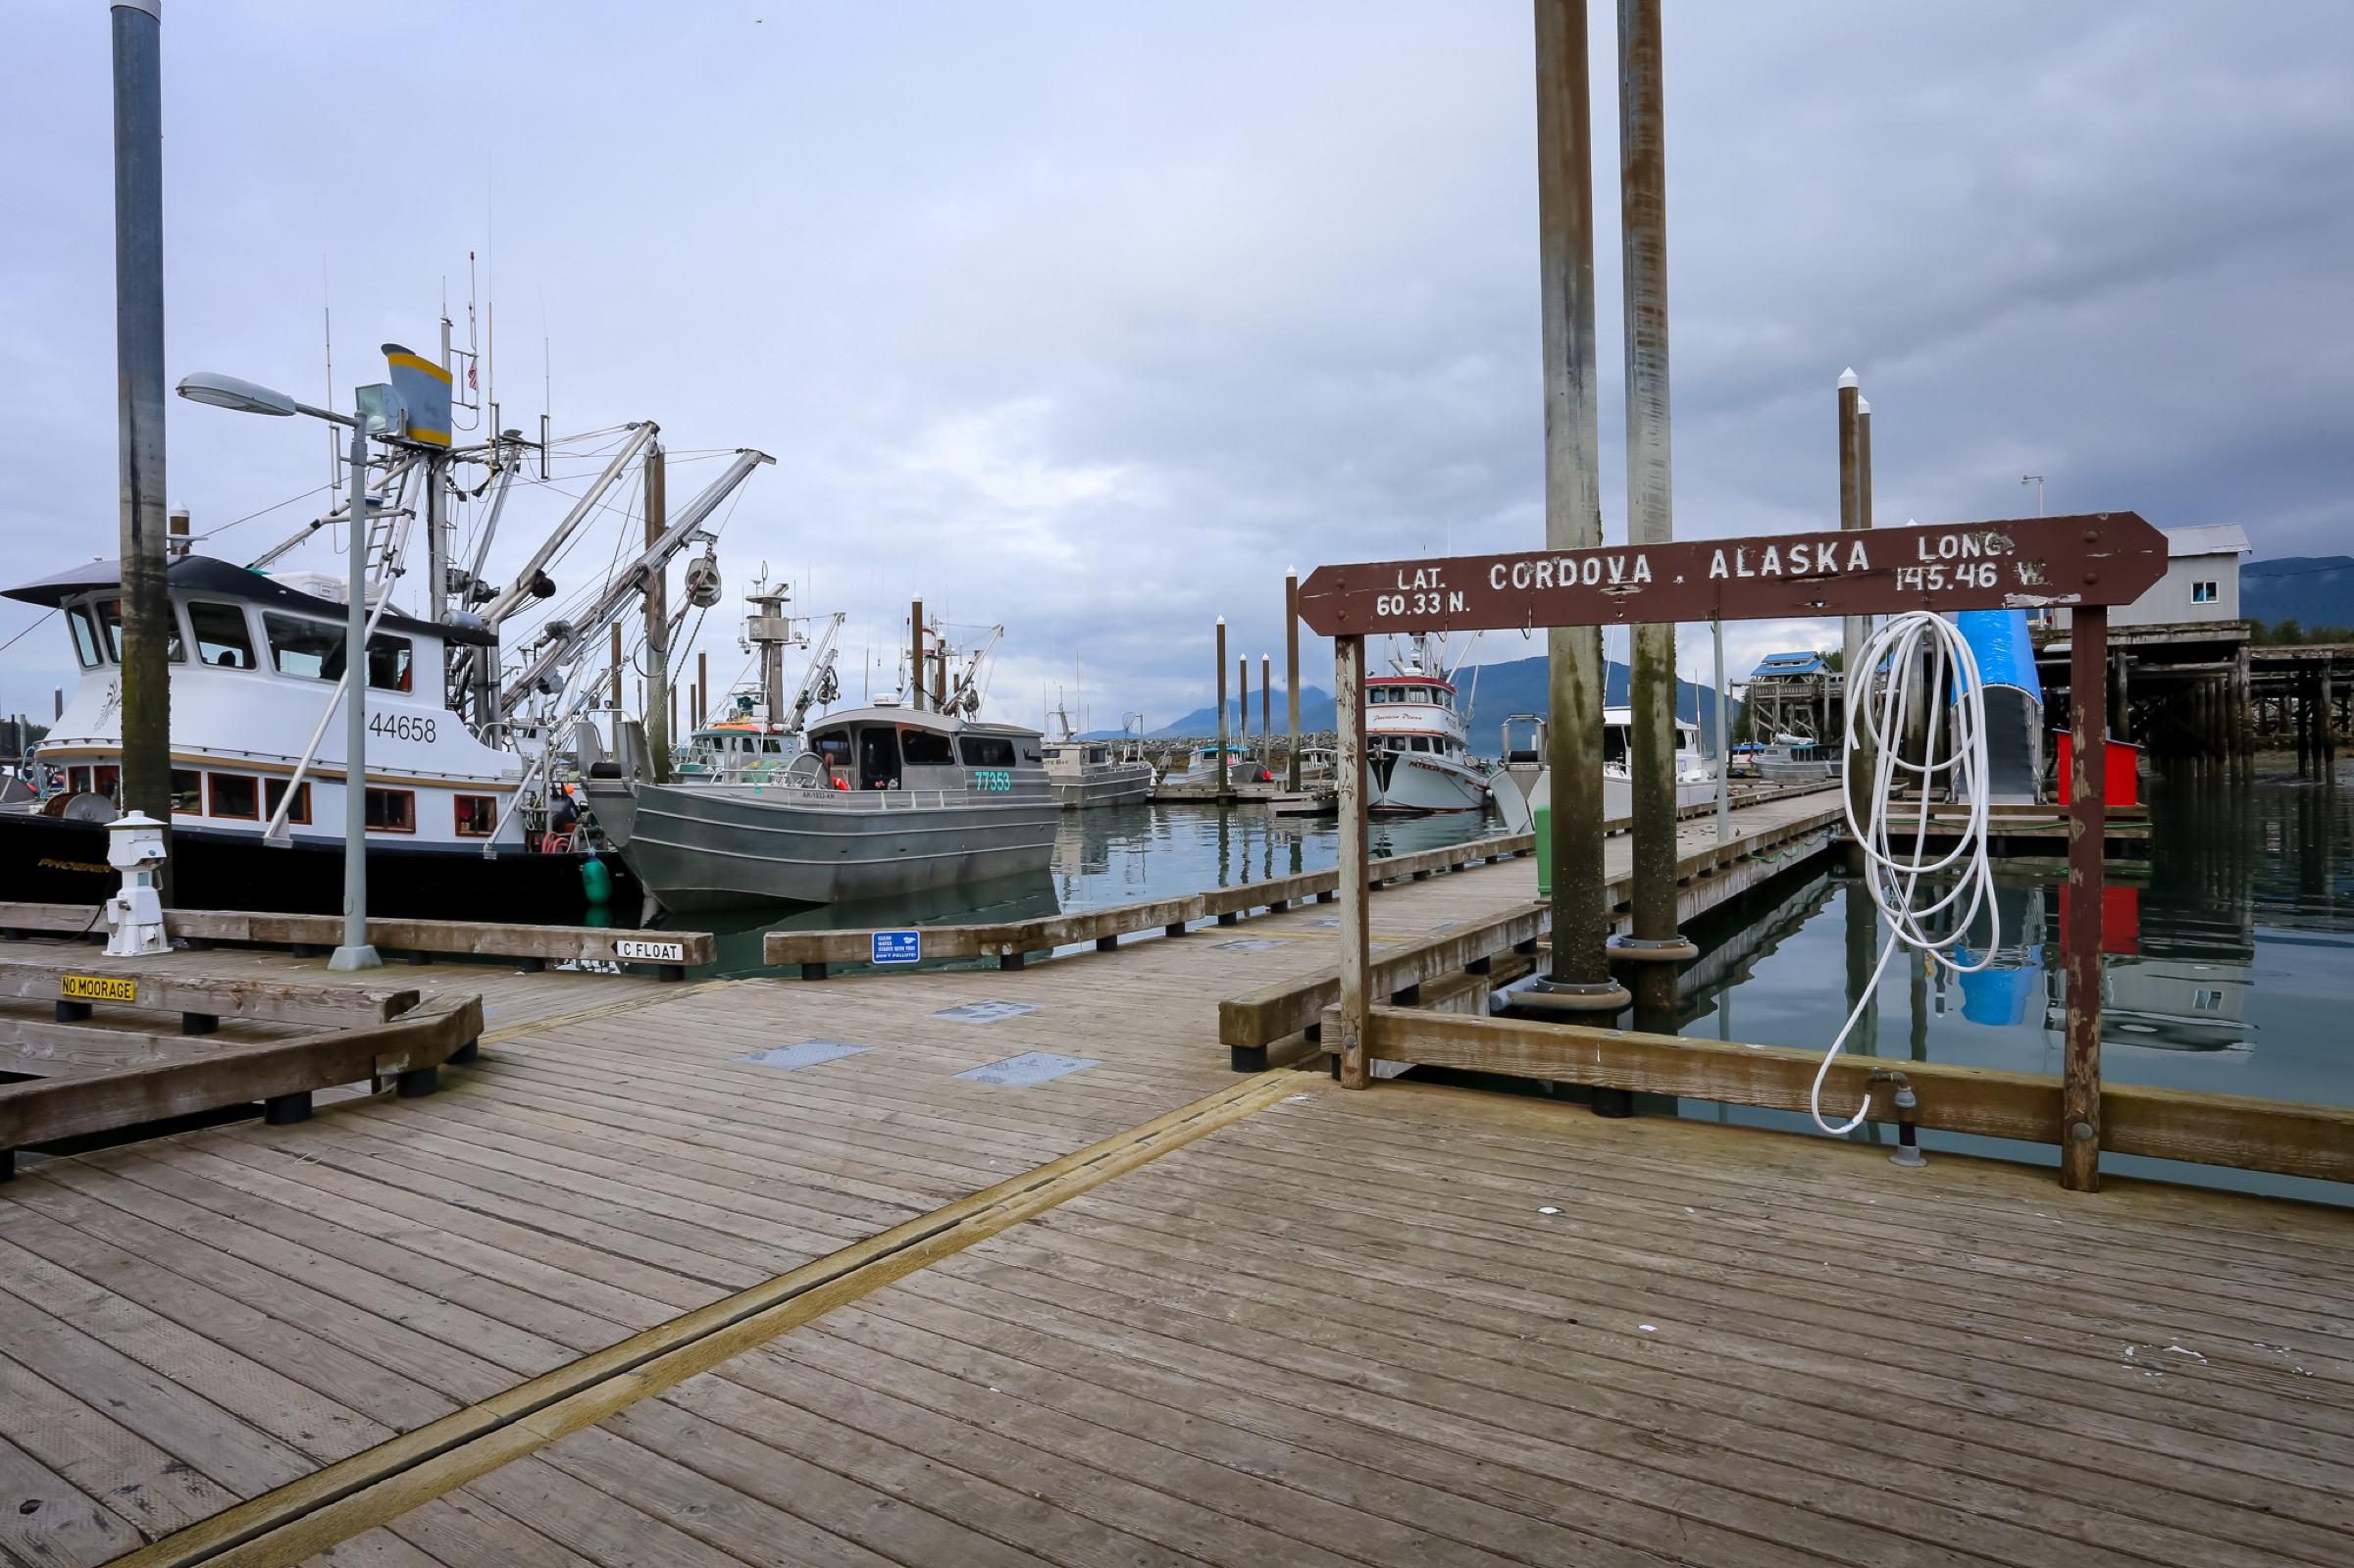 On the docks in the old harbor. Photograph by Julia Rosen